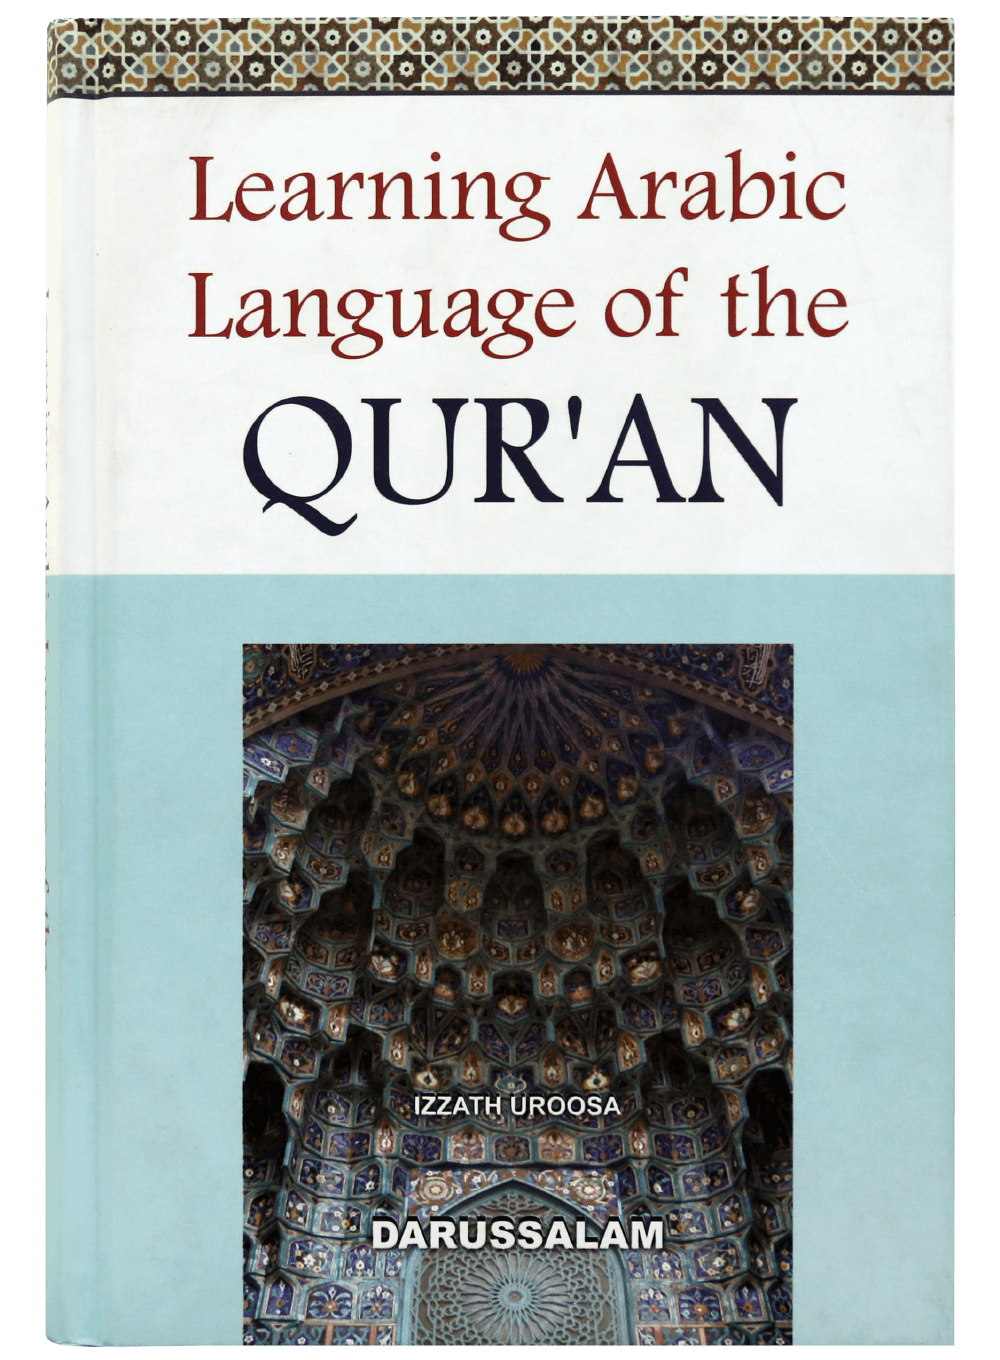 learning-arabic-language-of-the-quran-darussalam-20180405-105404